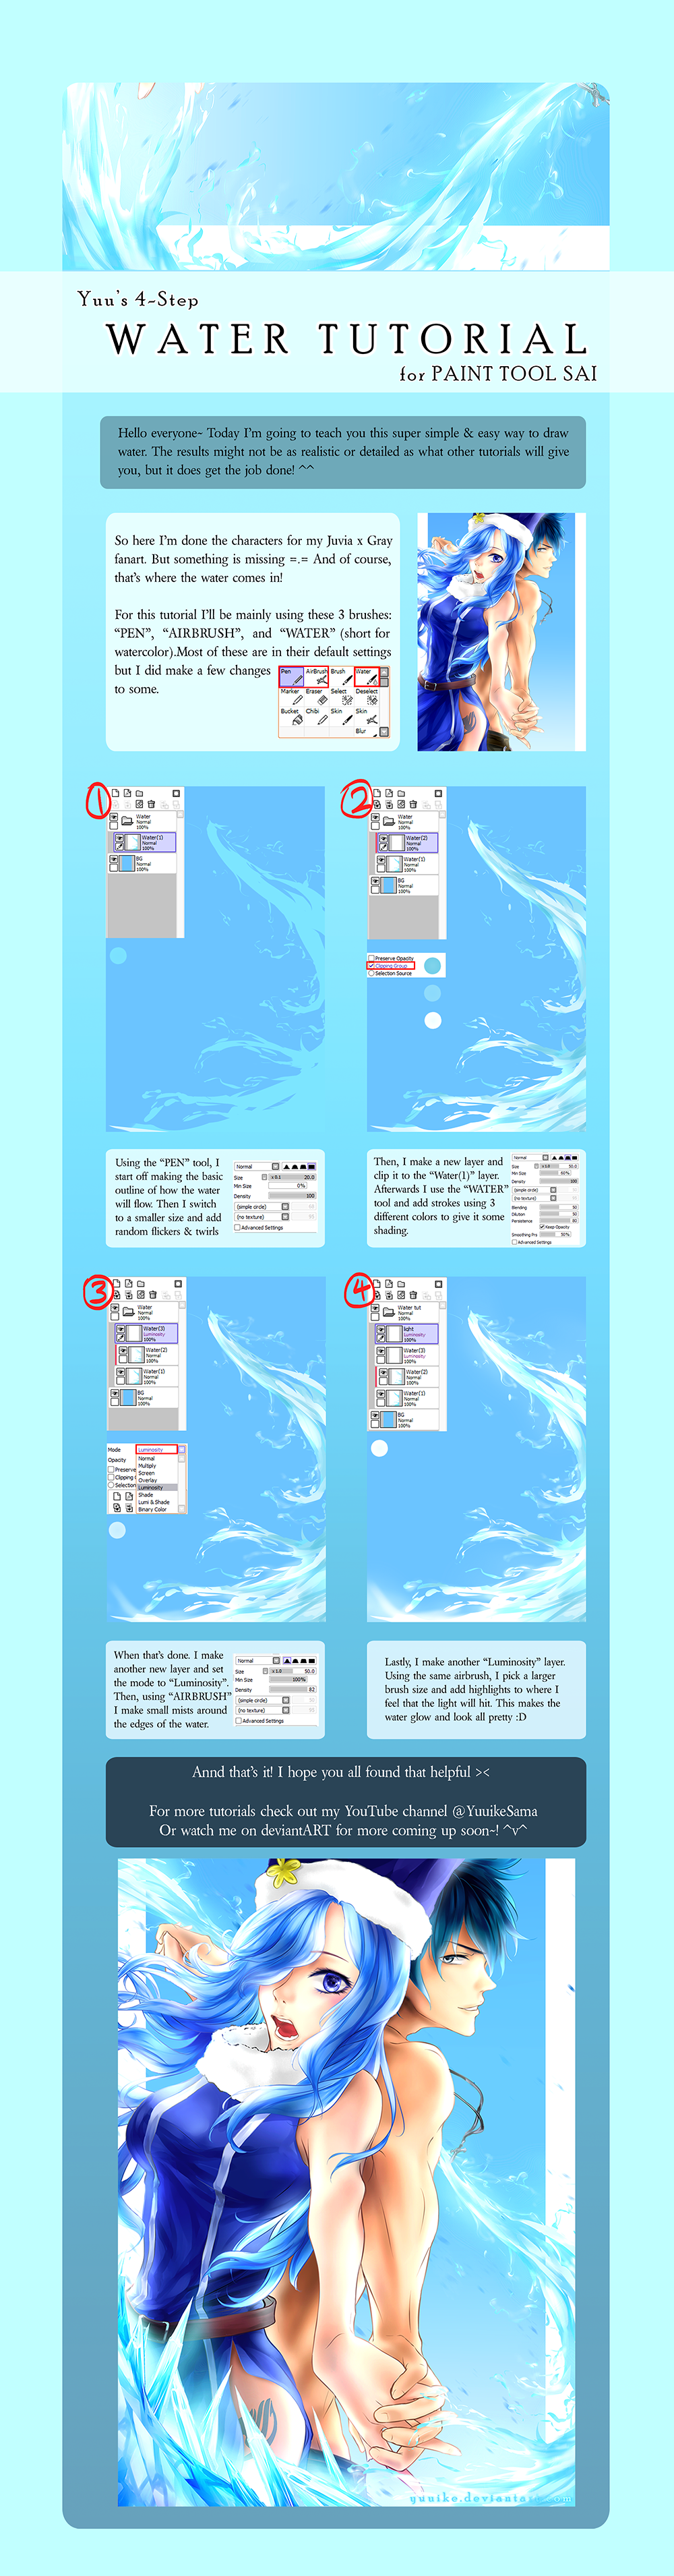 4 step water tutorial by yuuike on deviantart for Painting on water tutorial